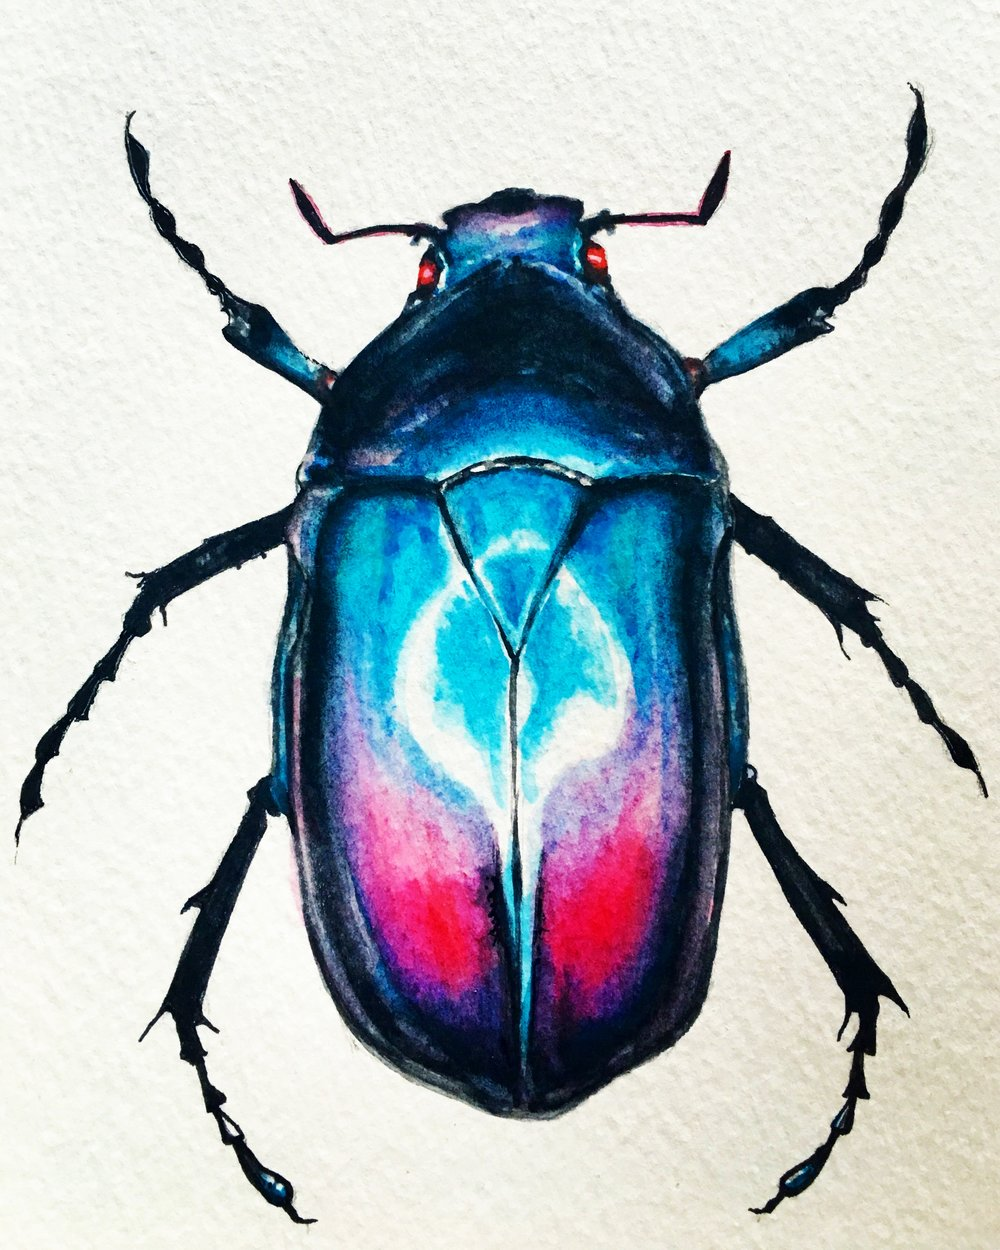 Watercolor-Beetle-Dustin-Goolsby-Art.JPG